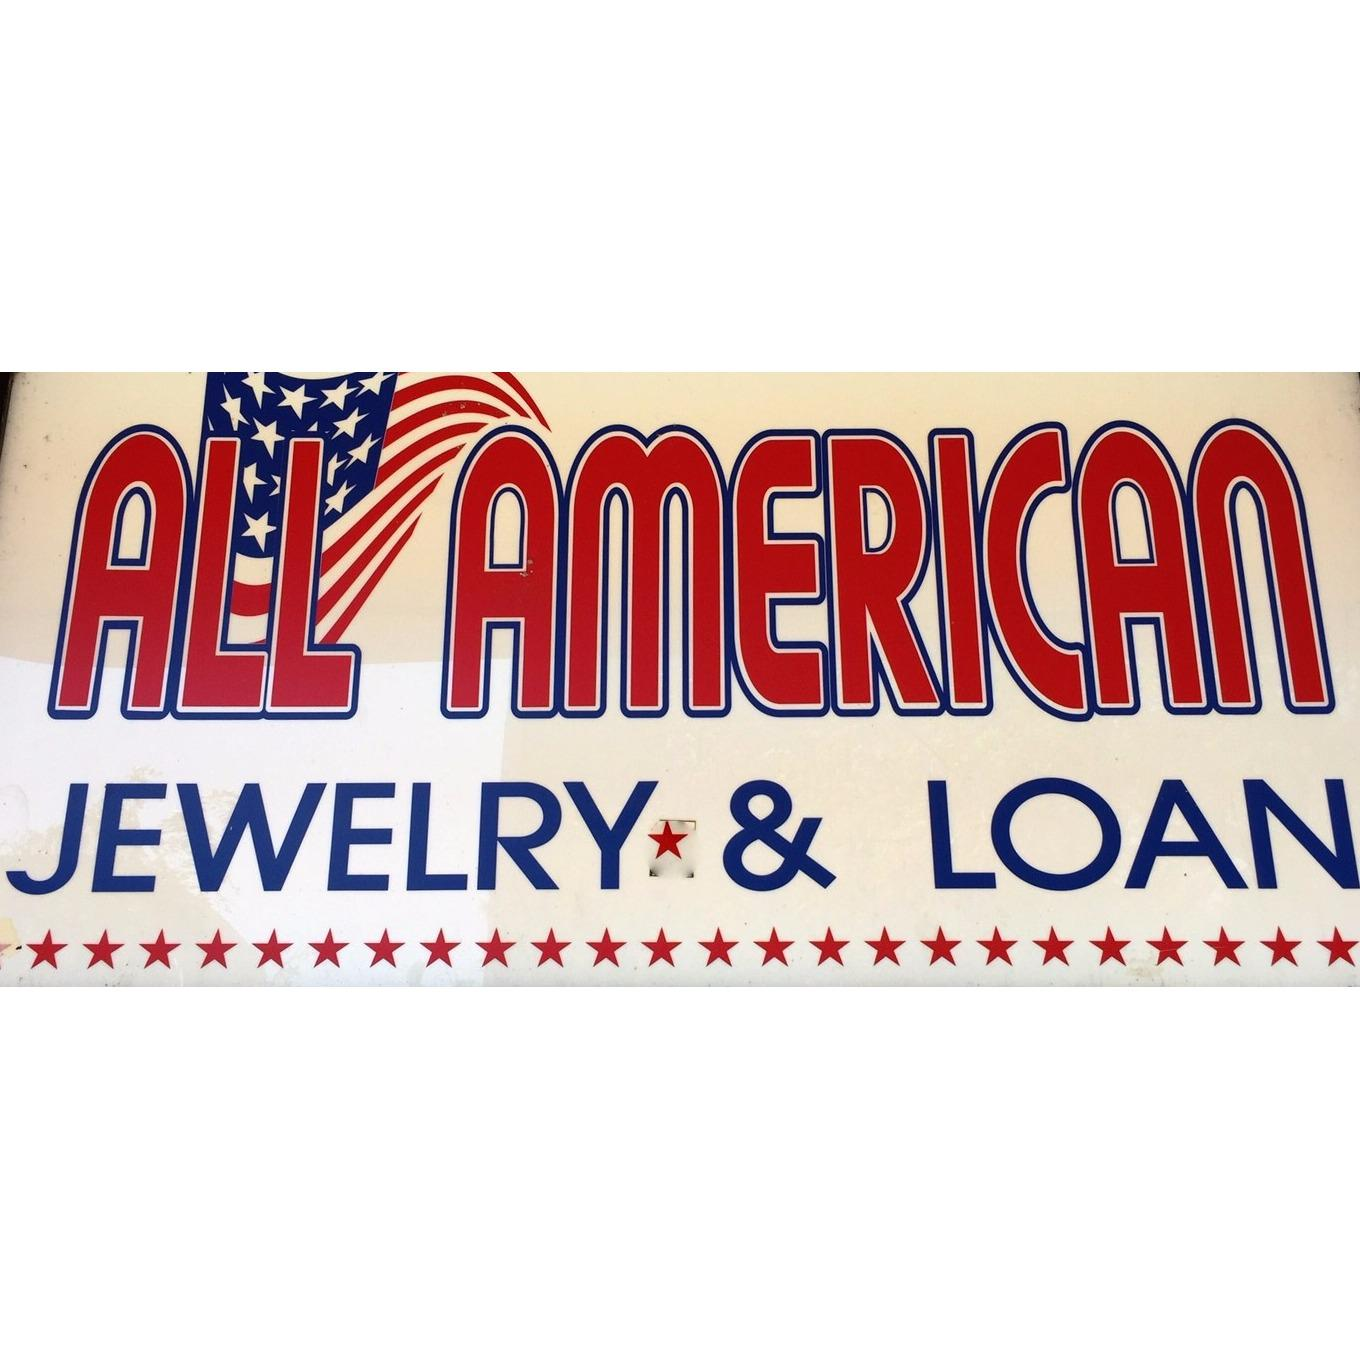 All American Jewelry and Loan